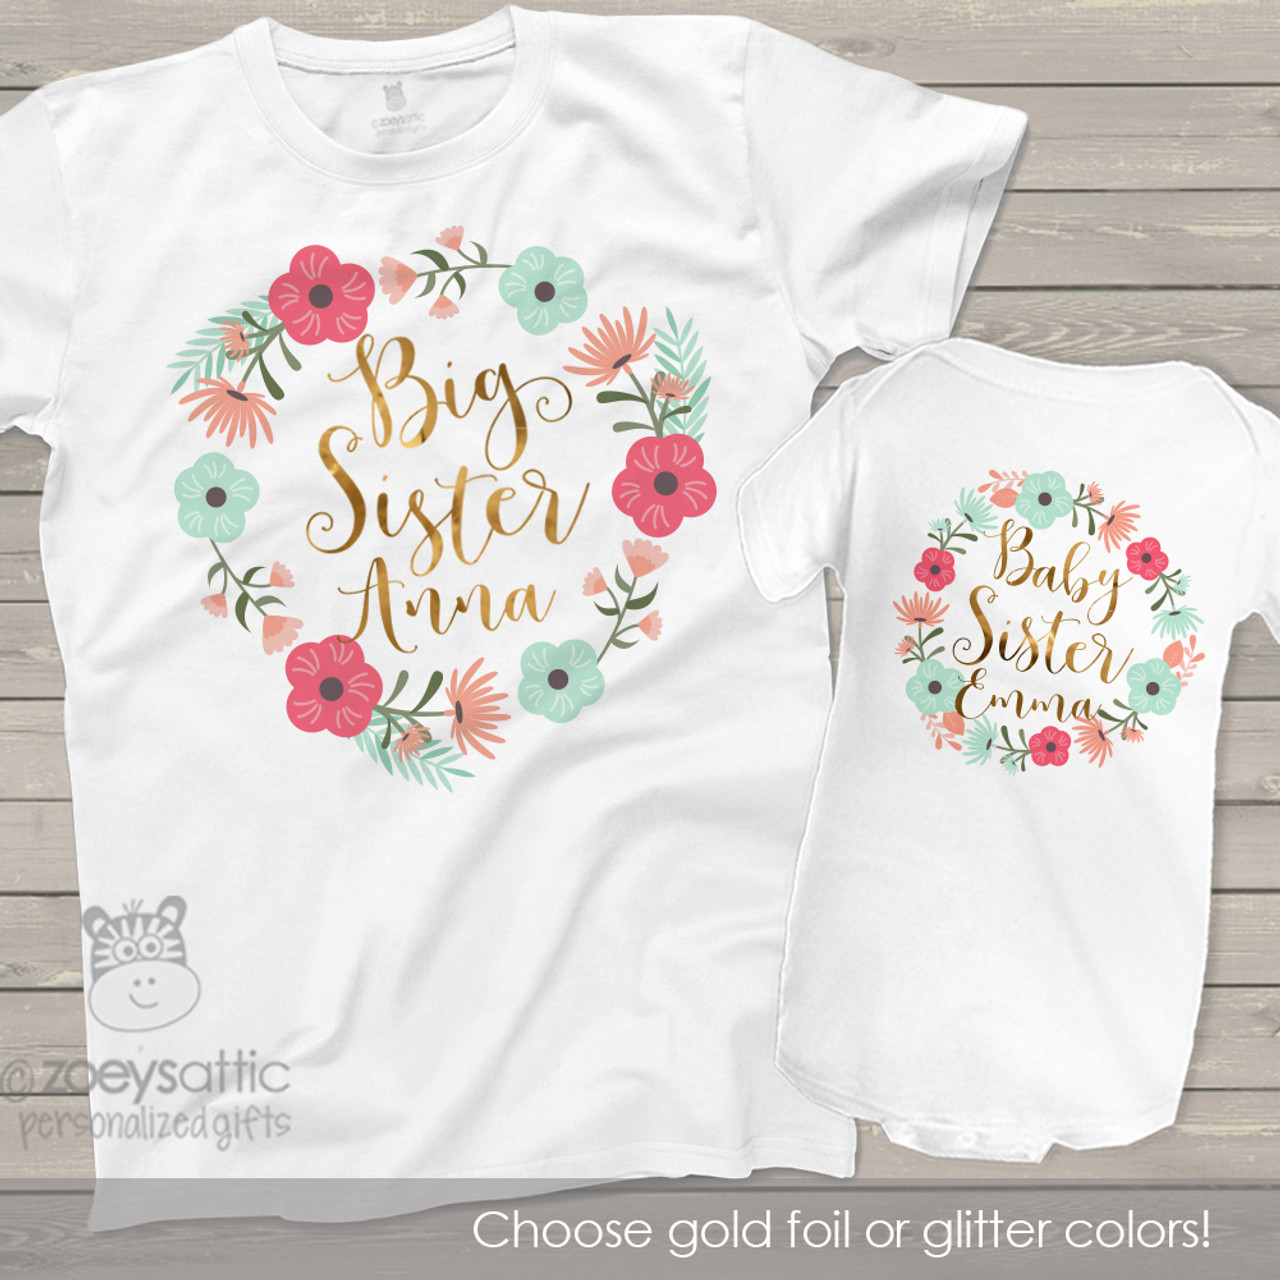 Printed Baby Toddler Matching Girls Floral Big /& Little Sister Wreath T-Shirts